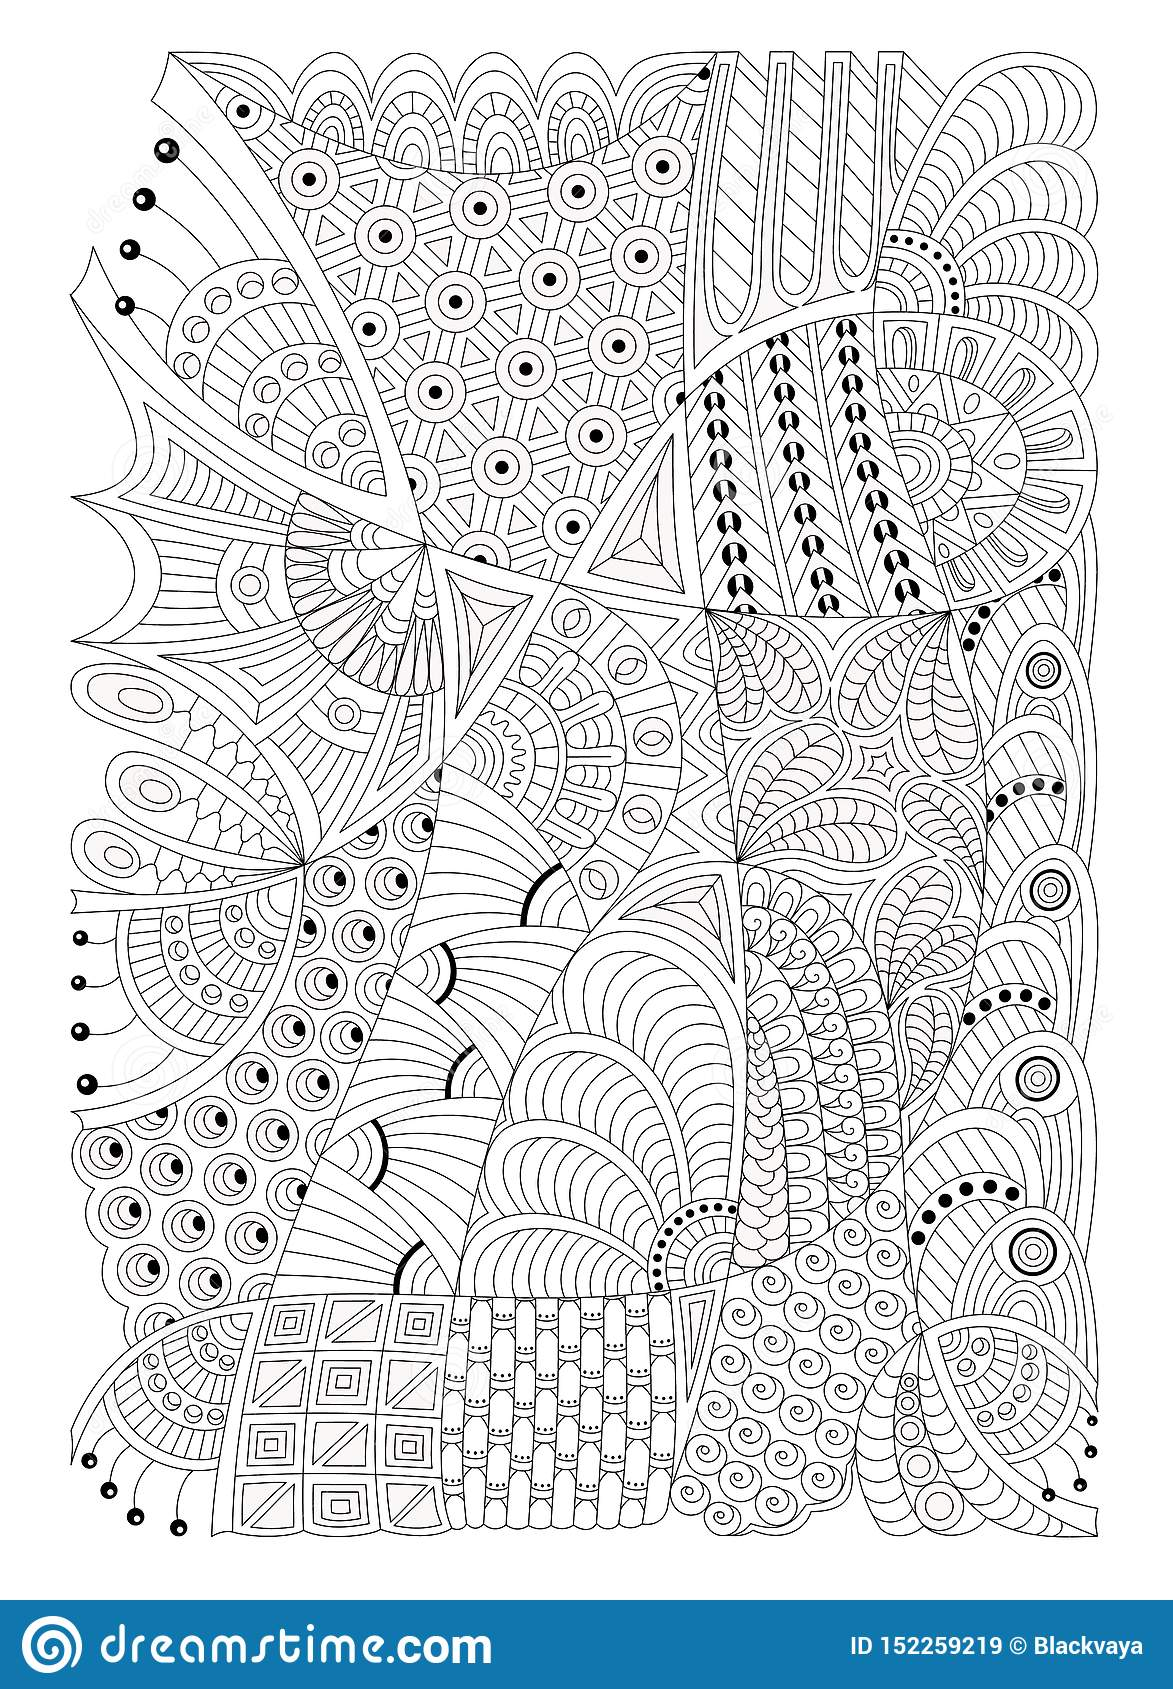 6 Best Images of Printable Zentangle Patterns Coloring Pages ... | 1689x1173